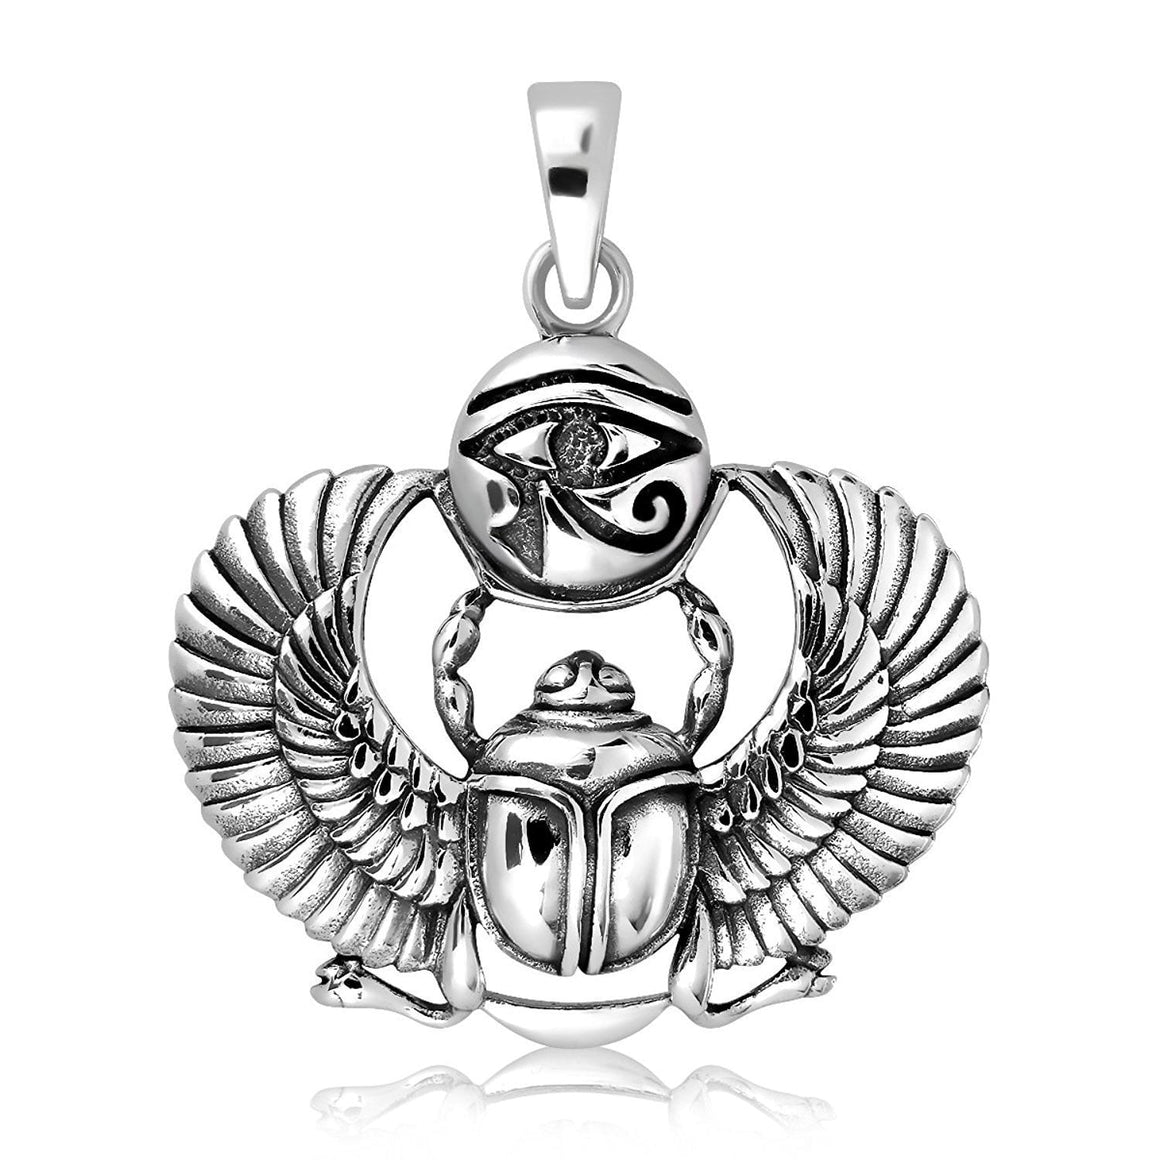 925 Sterling Silver Egyptian Eye of Horus Udjat Ancient Scarab Beetle Pendant - SilverMania925